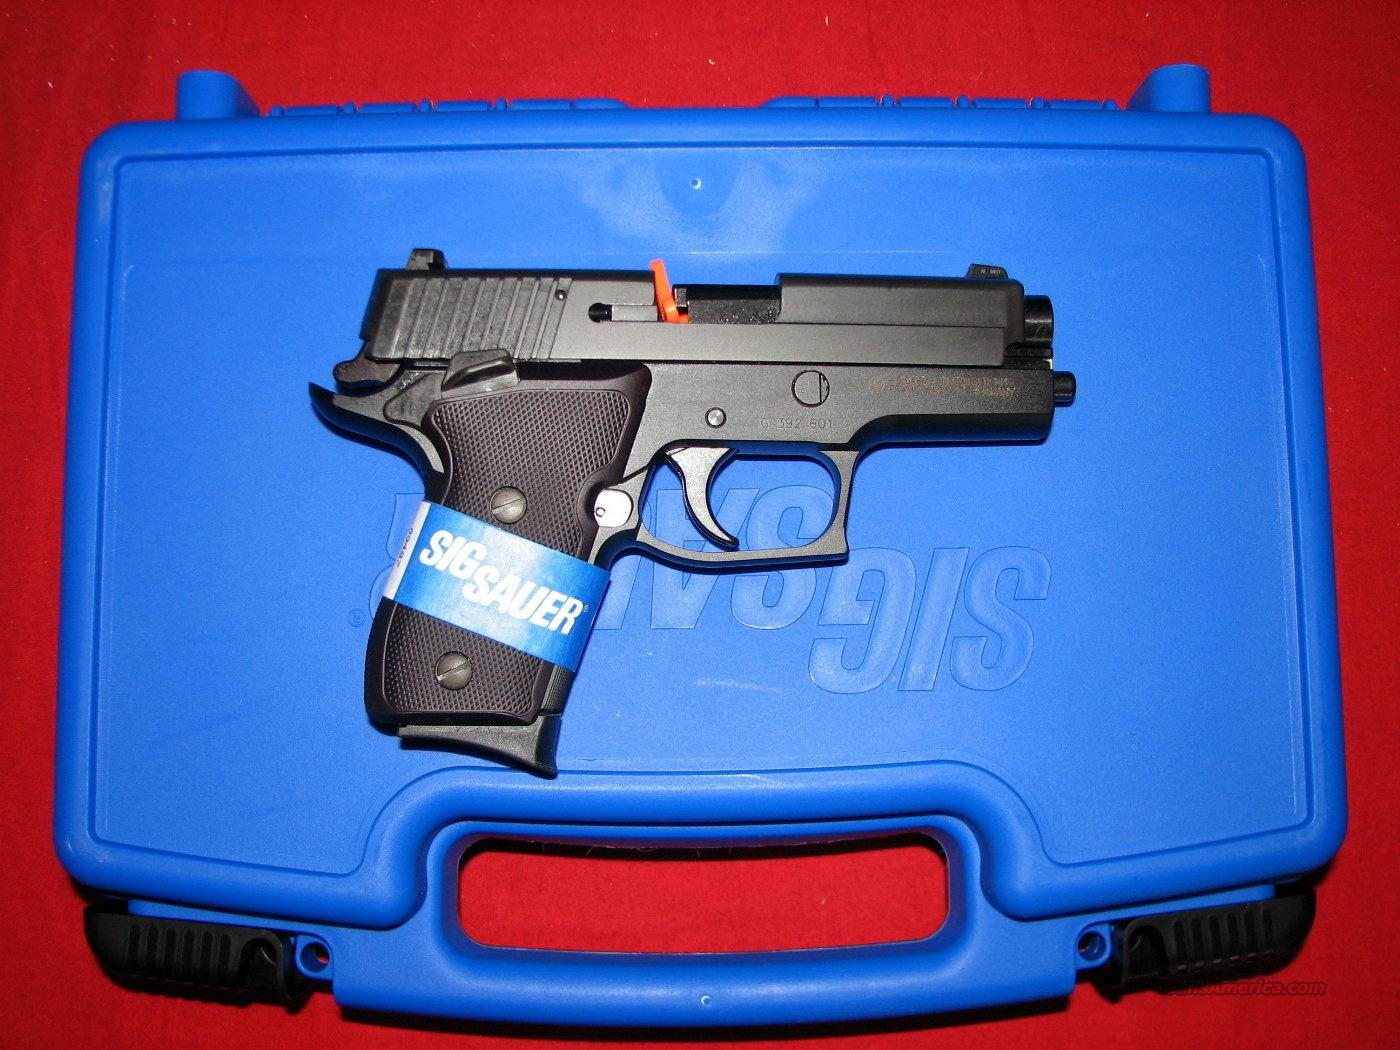 P220 Compact 45acp w/Night Sights  Guns > Pistols > Sig - Sauer/Sigarms Pistols > P220